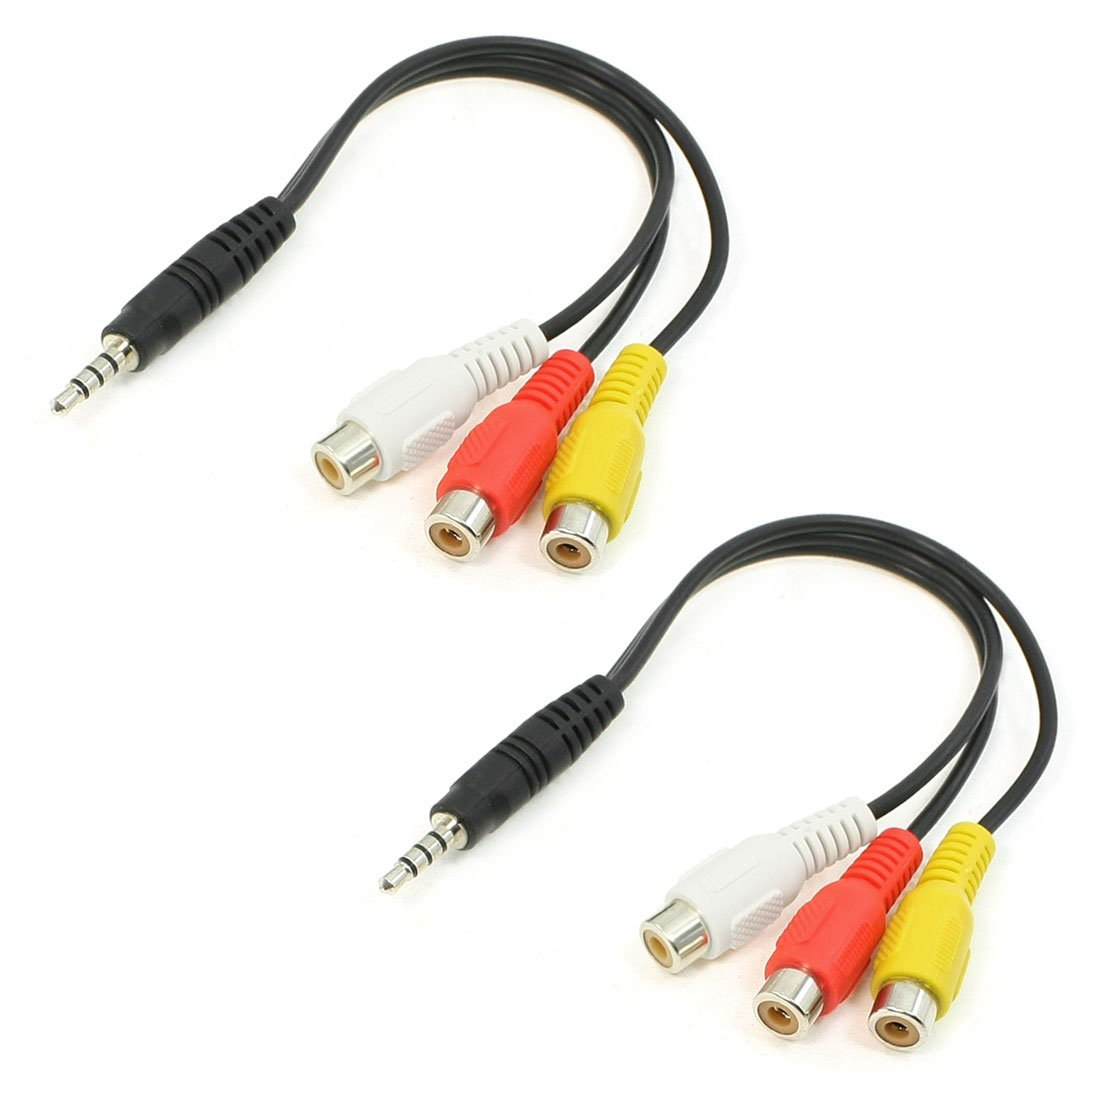 2pcs 3 RCA Female Audio/Video Connector to 3.5mm Jack Adapter Cable